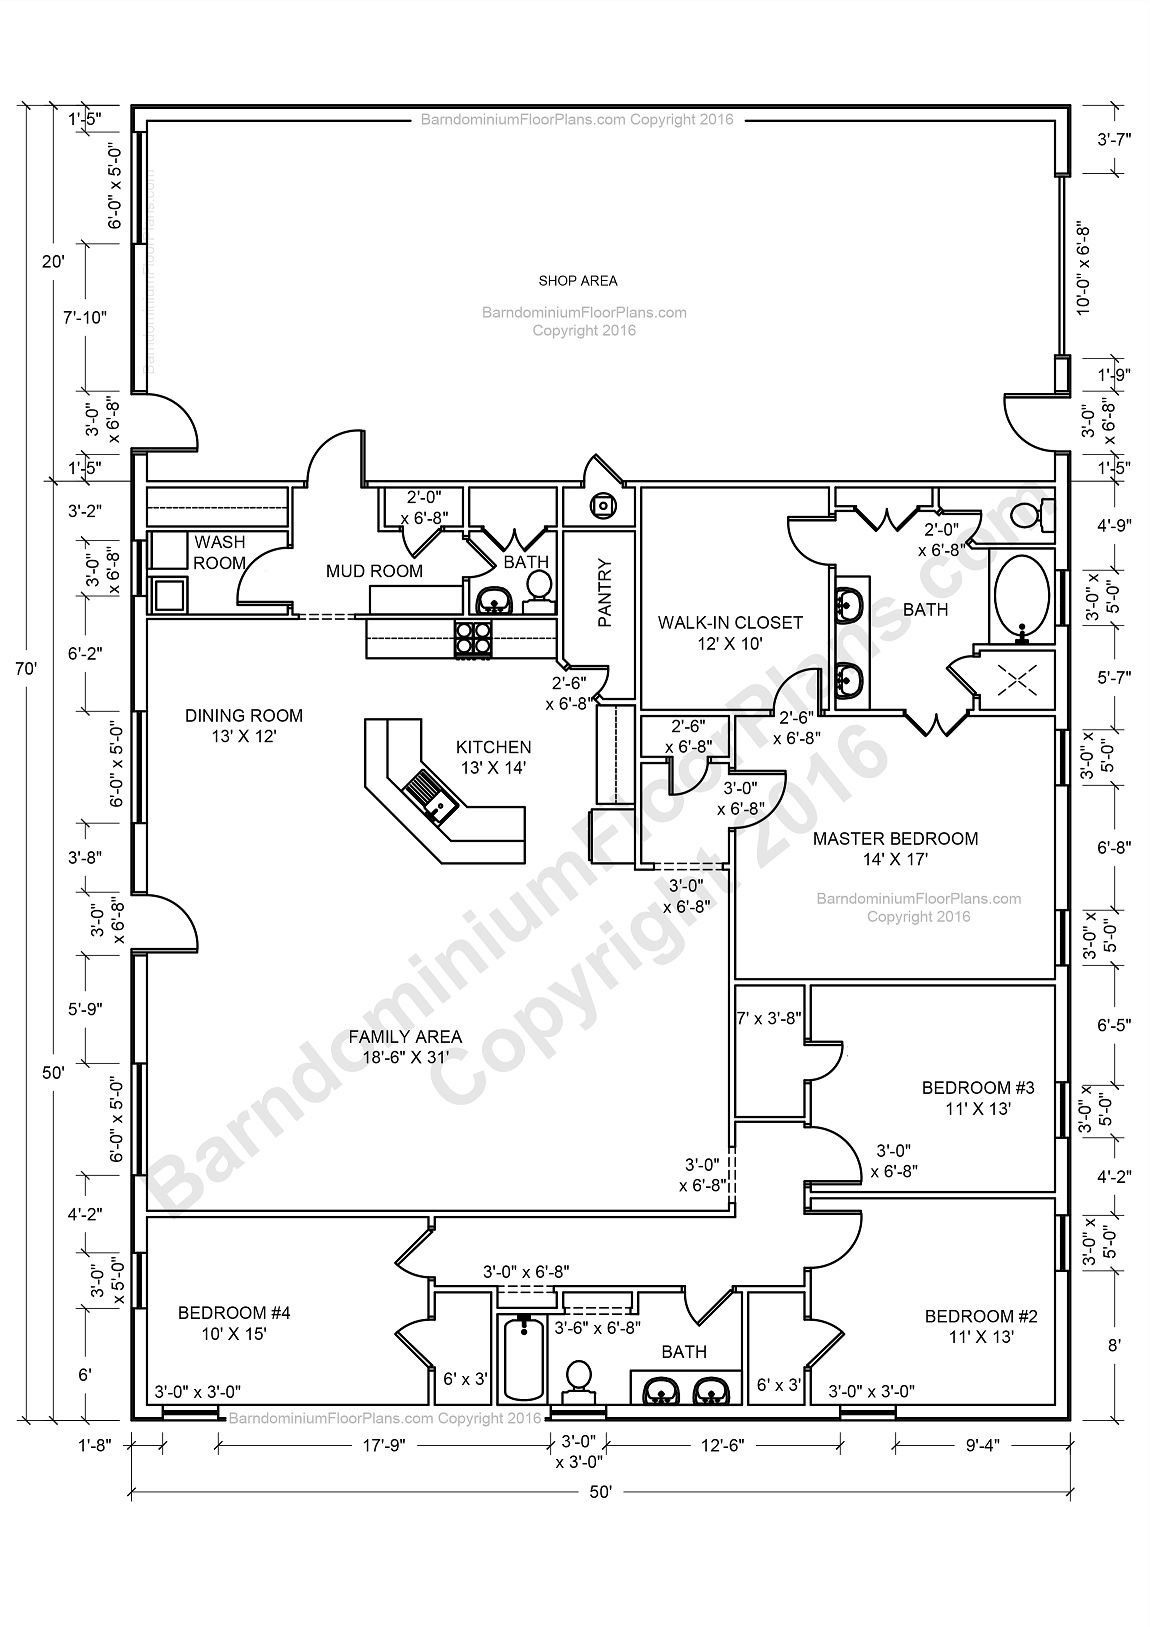 Timberframe Barndominium With 4 Bedrooms 3 Bath Mudroom Gigantic Great Room Covered Porche Metal House Plans Barndominium Floor Plans Pole Barn House Plans